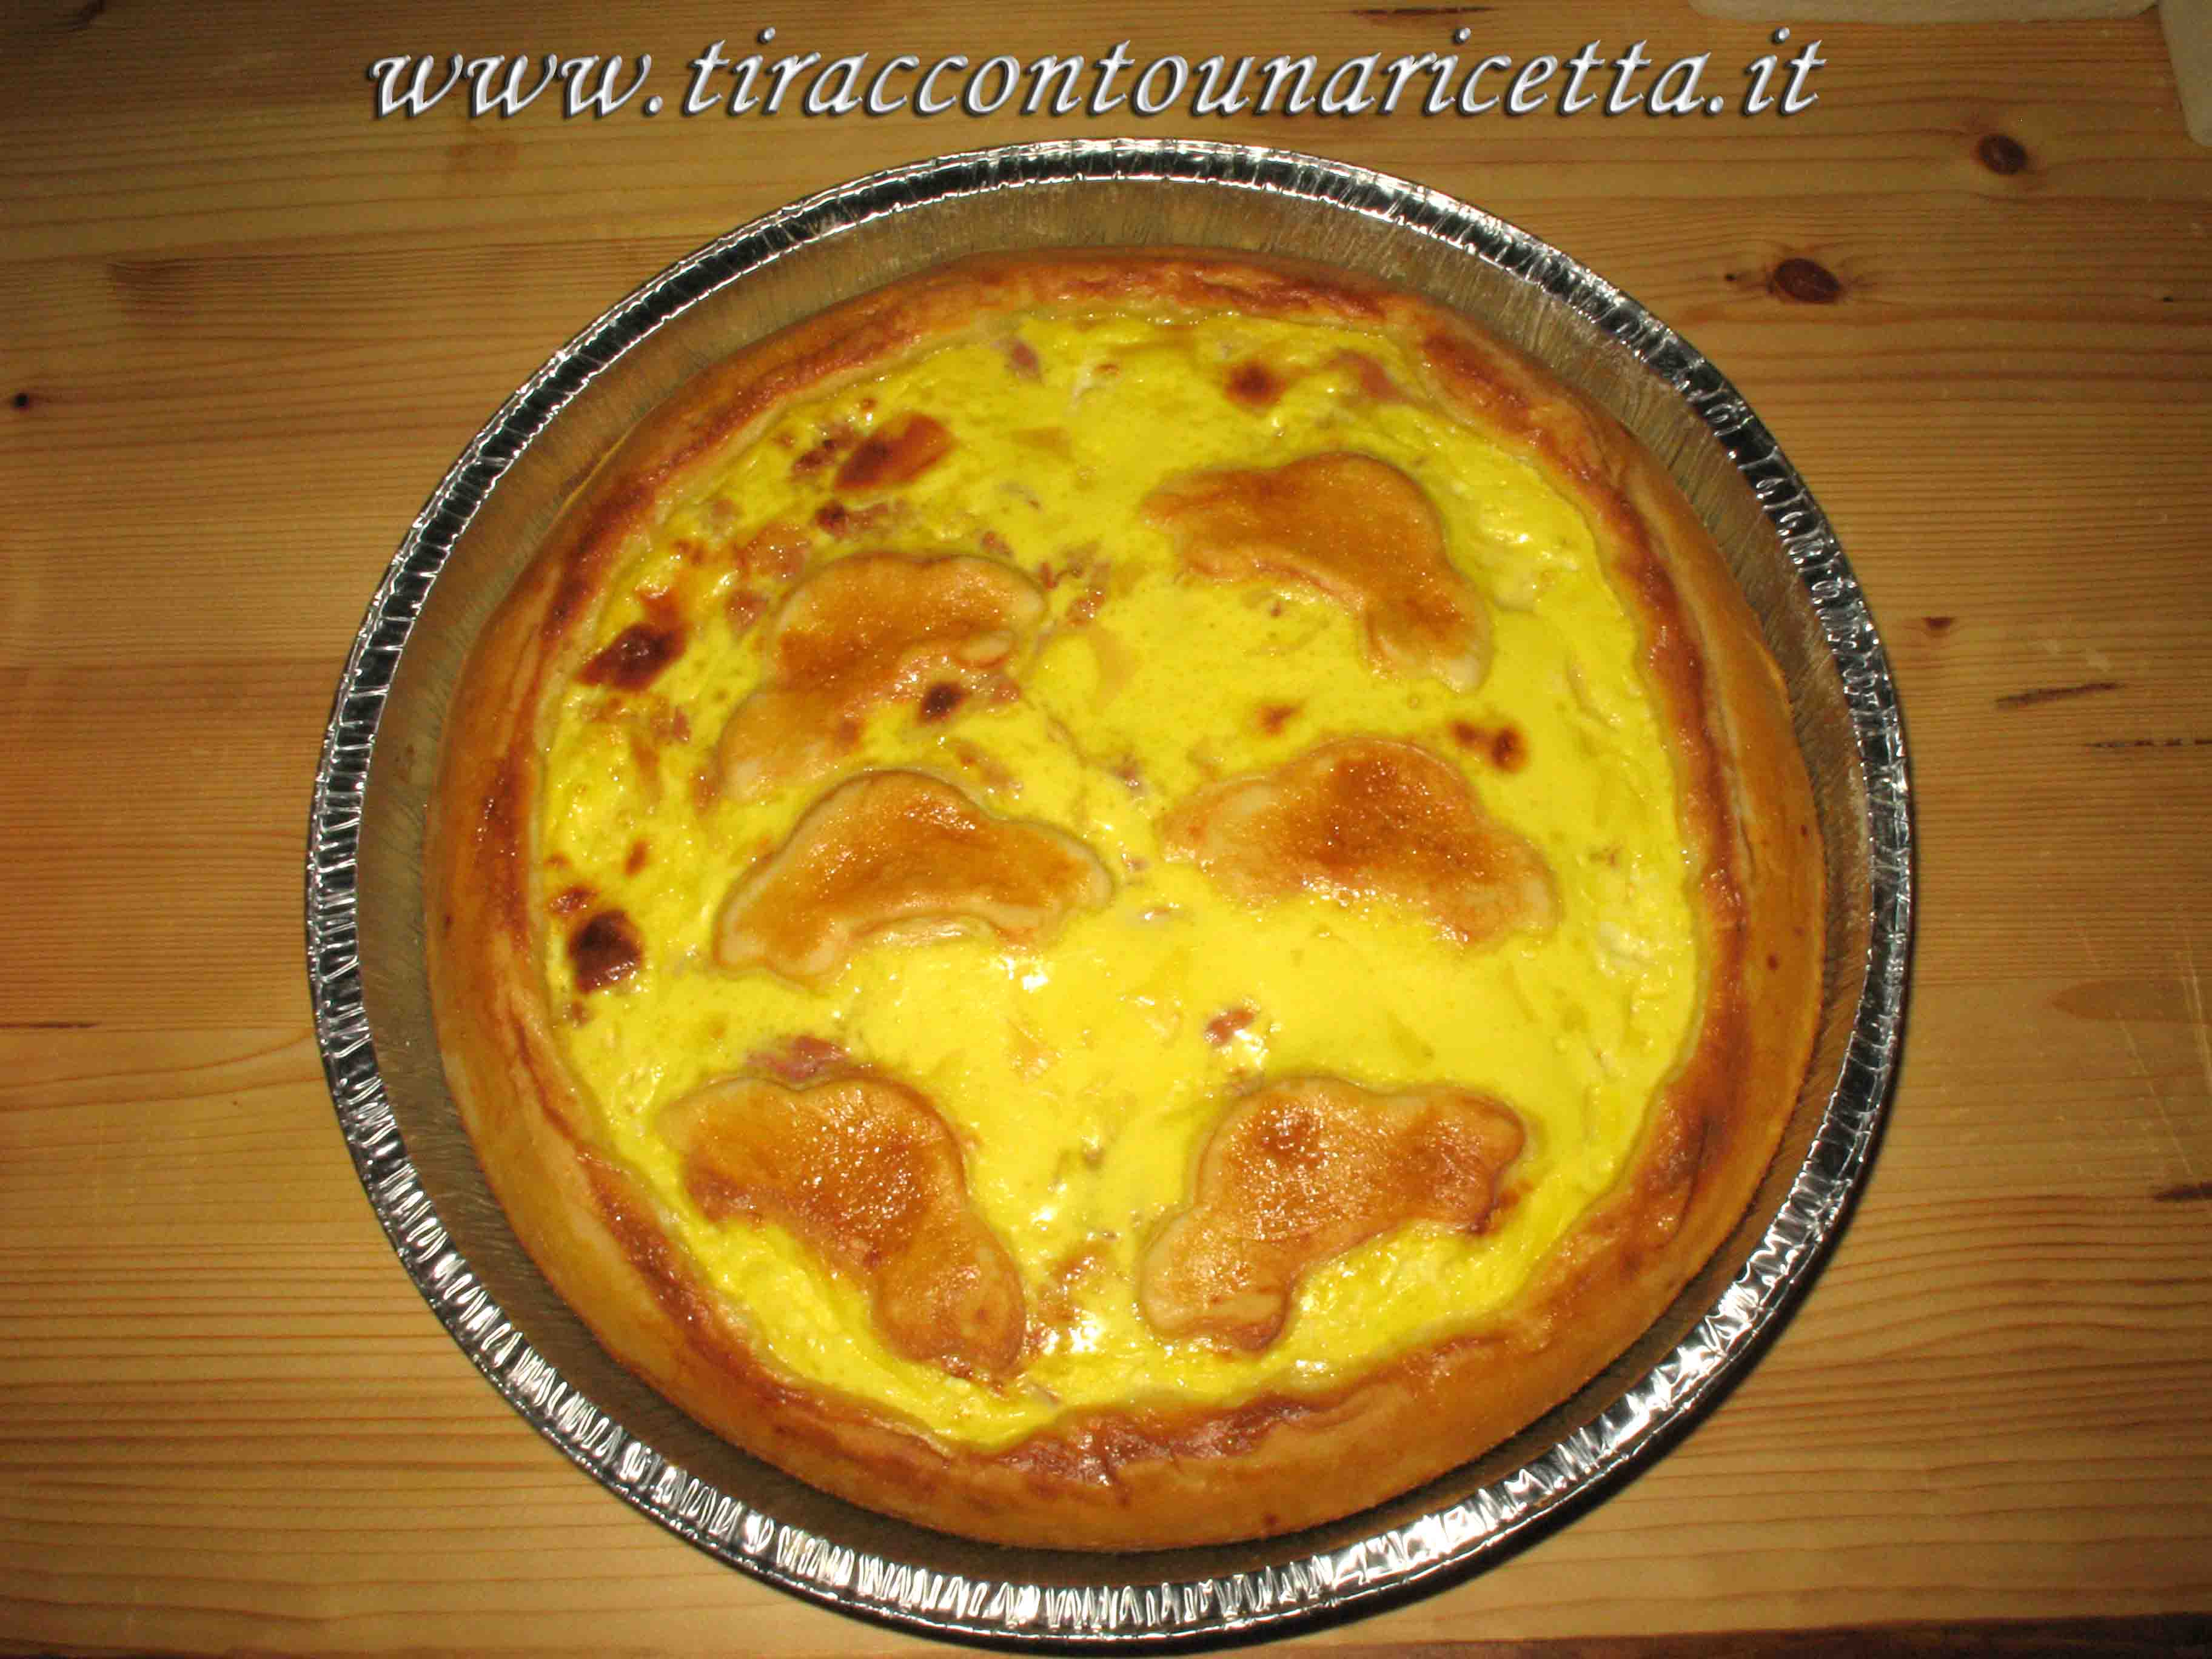 Rustic pie with bacon and Swiss cheese (Emmenthal)